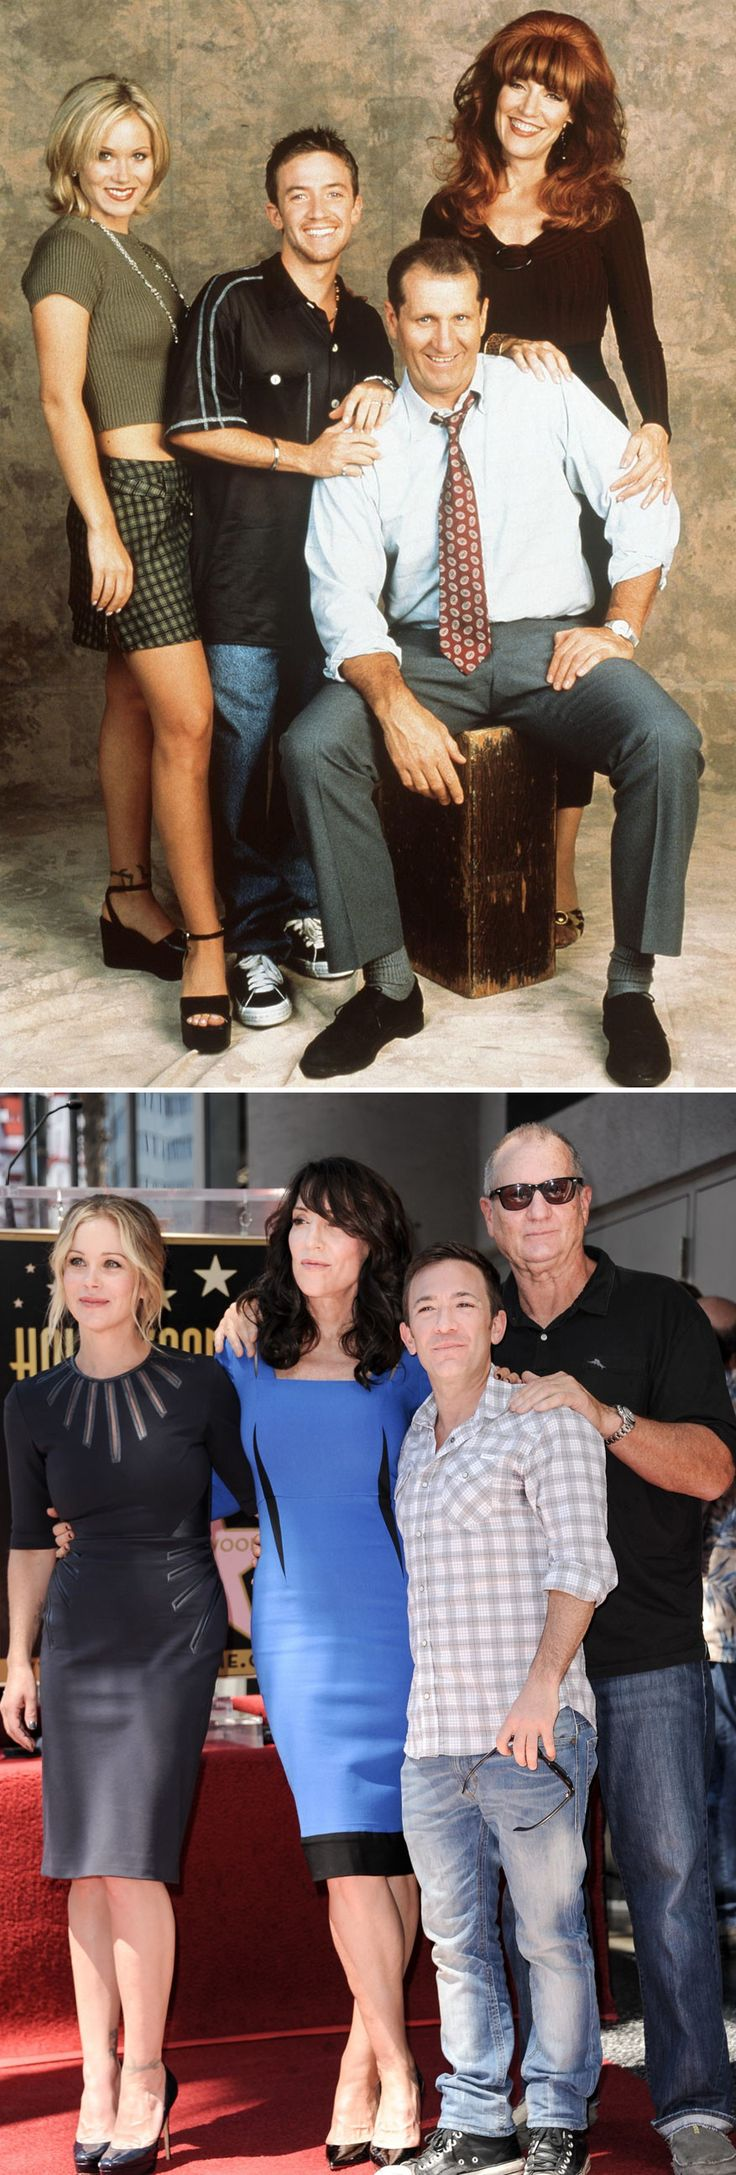 Married with Children ran for 11 season from 1987 to 1997 and followed the lives of the Bundy family and stars Katey Sagal, Ed O'Neill, Christina Applegate and David Faustino. The four of them were reunited in 2014 on the red carpet.